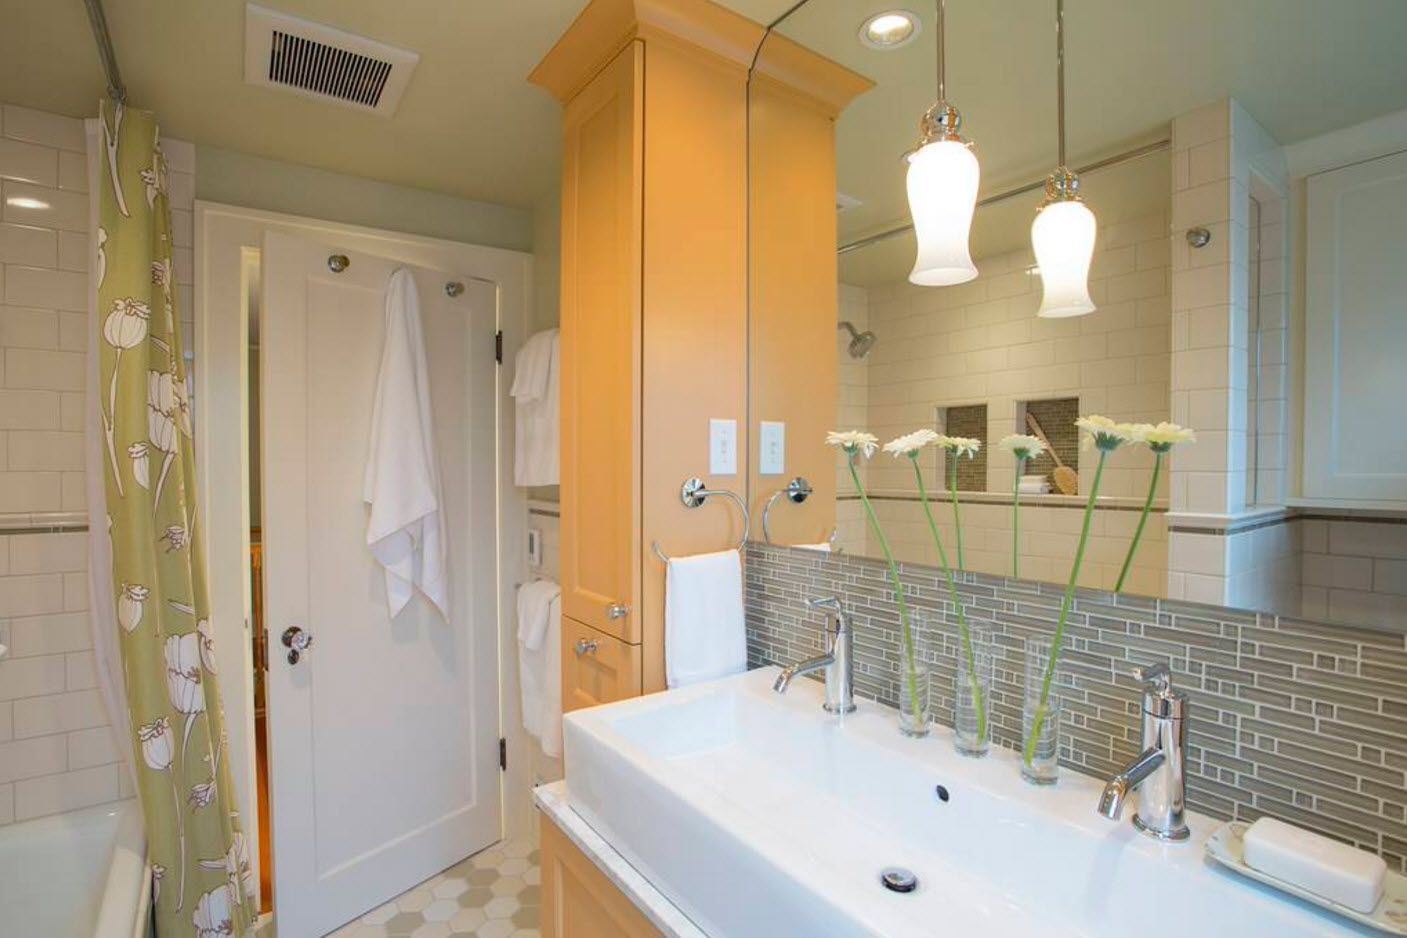 Different zones and combination of materials within bathroom interior